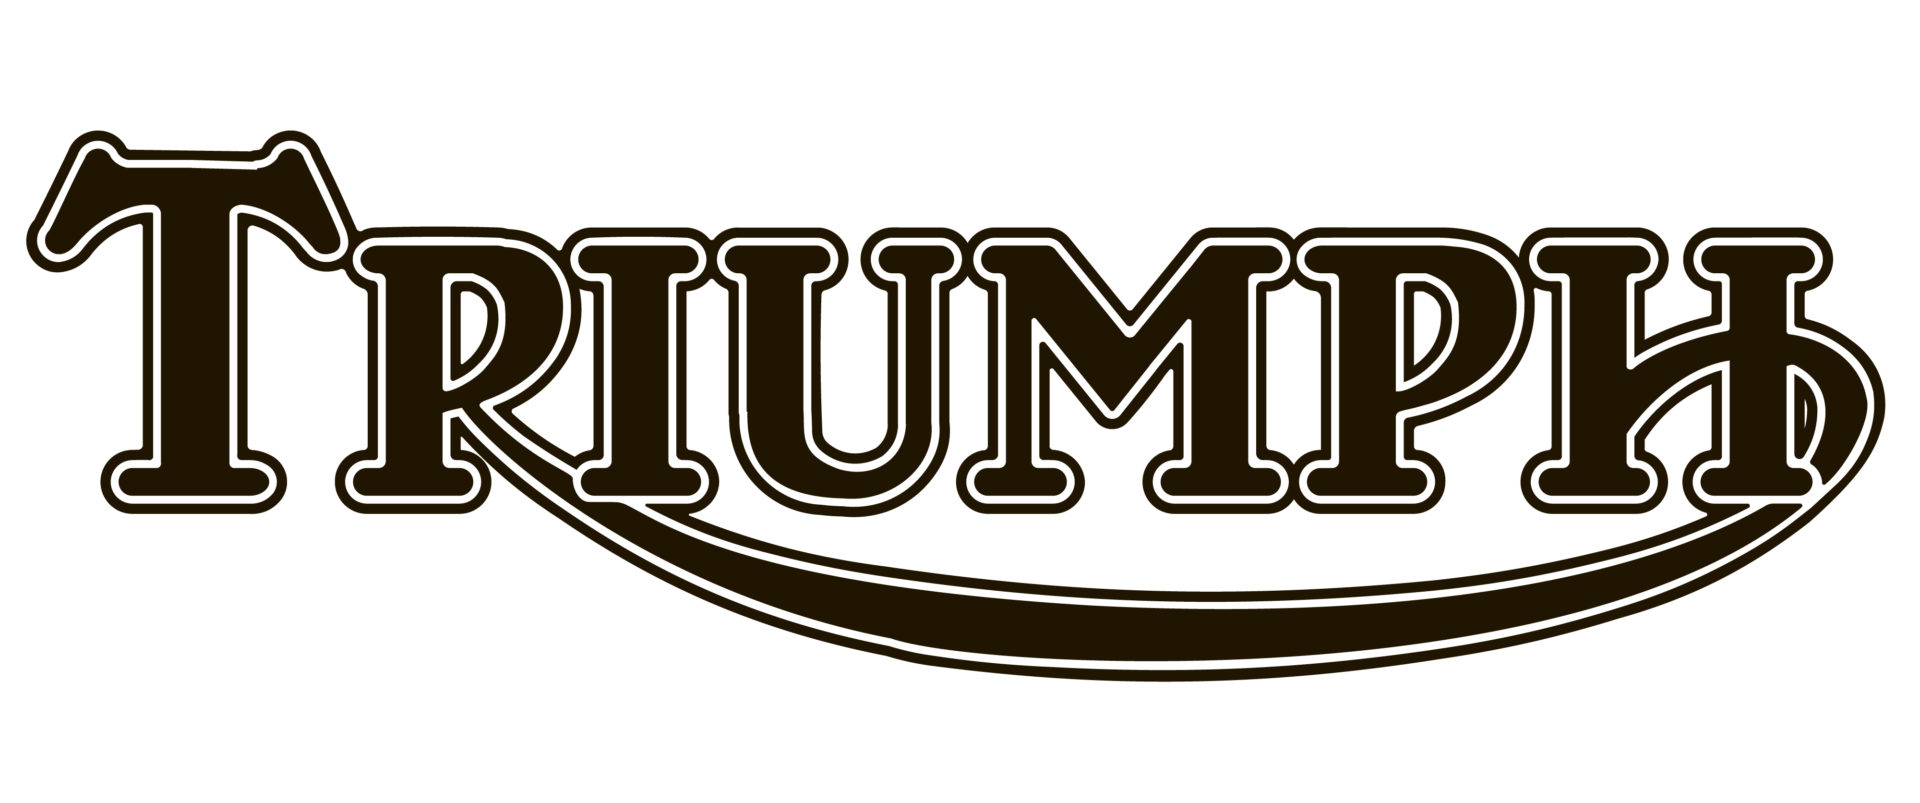 triumph logo history evolution meaning motorcycle brands